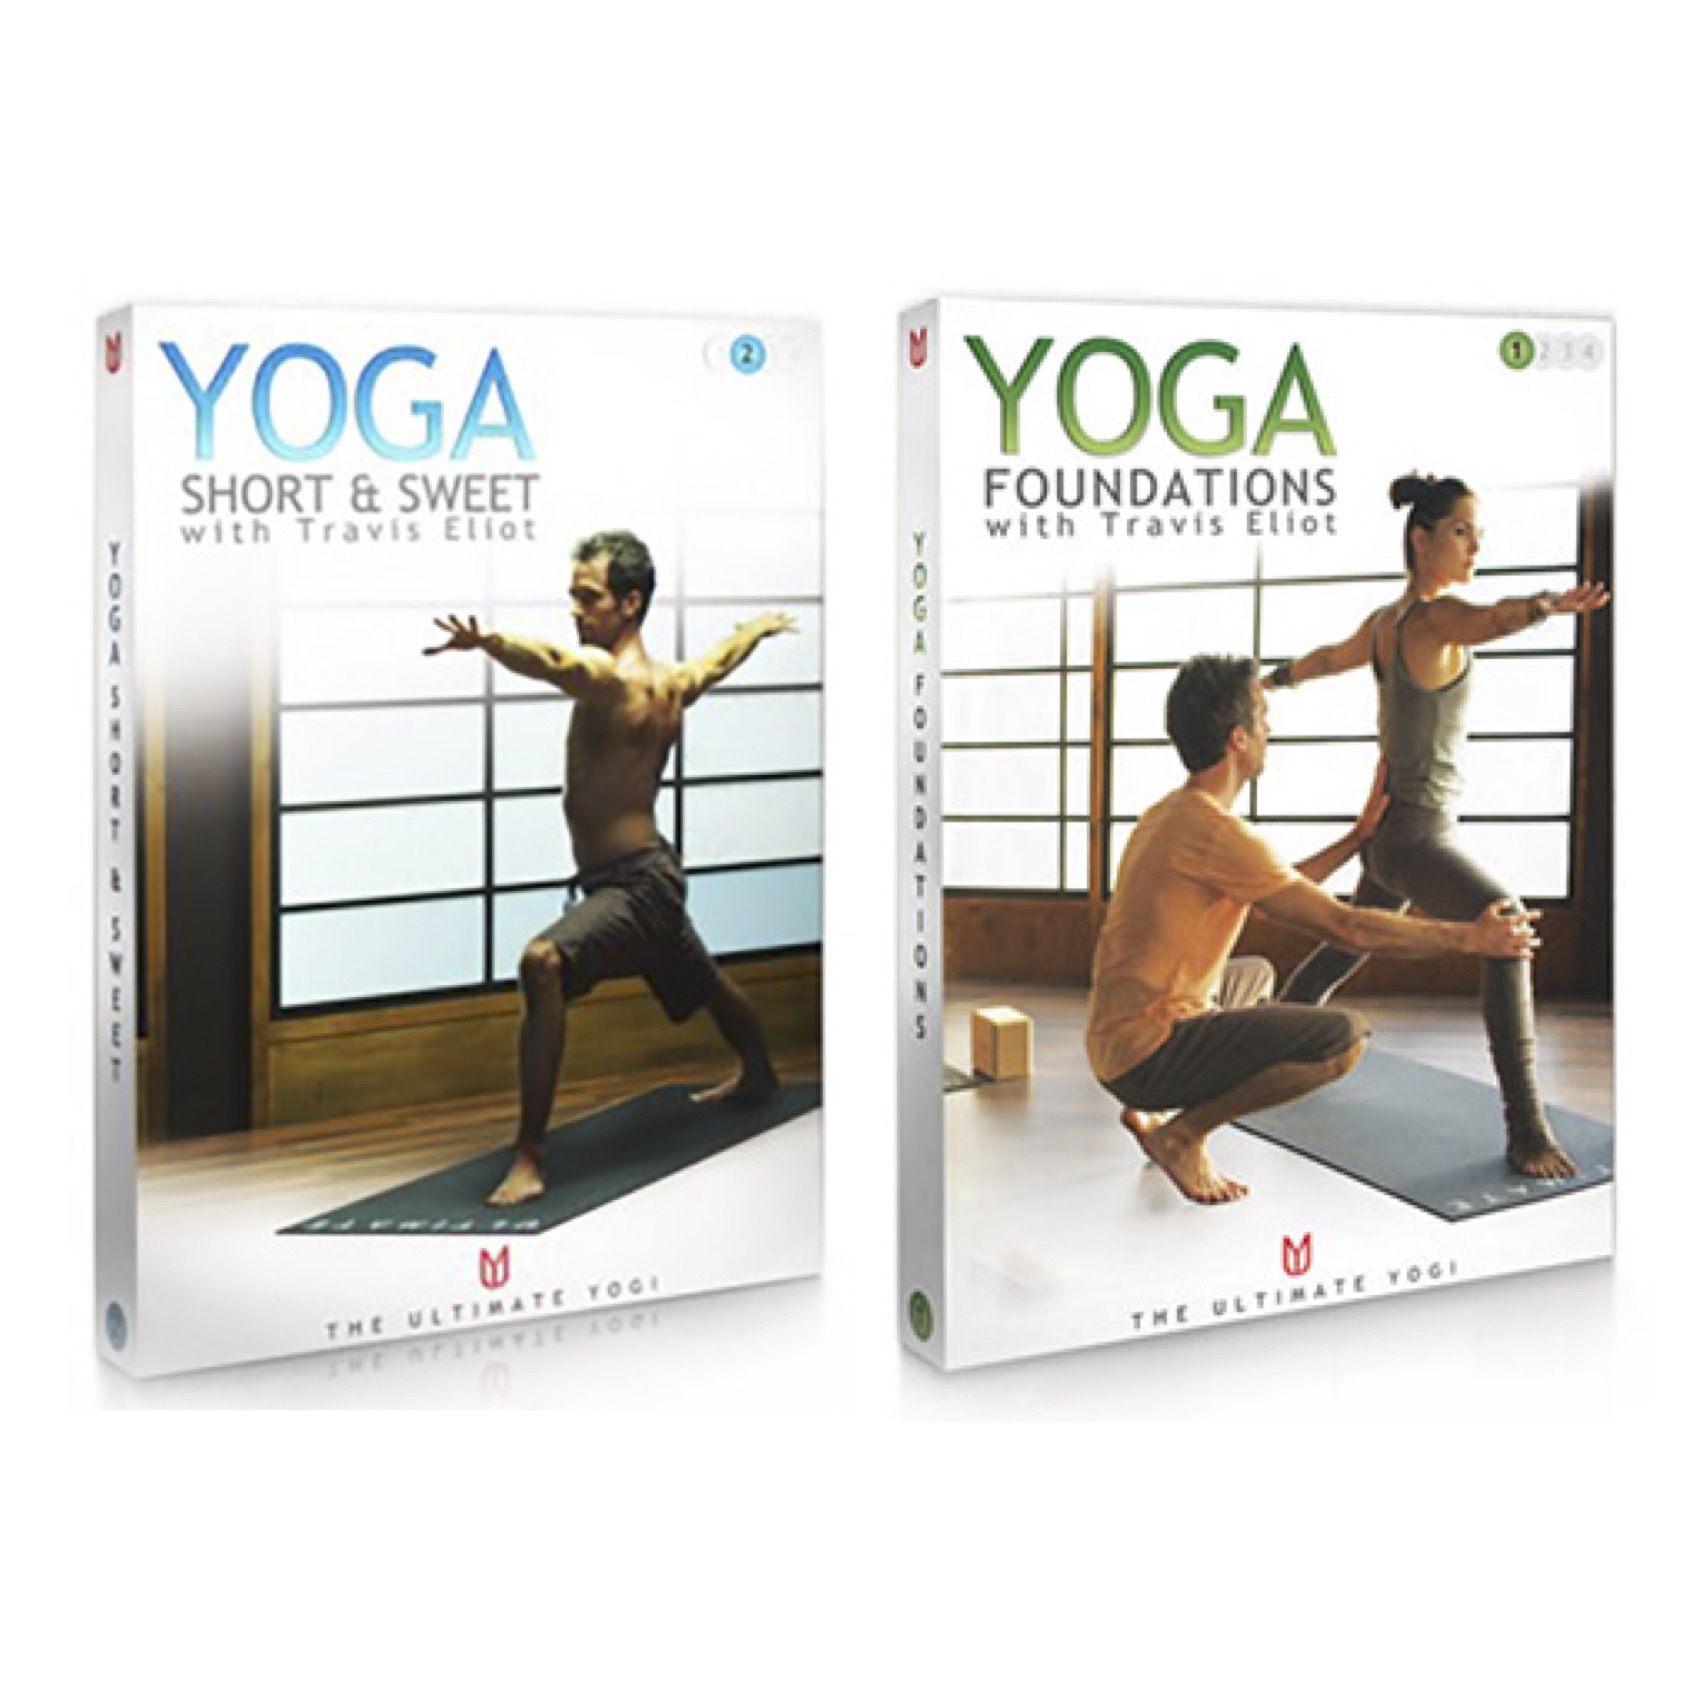 Yoga Foundations and Yoga Short & Sweet with Travis Eliot is now availabll in streaming format on UDAYA.com